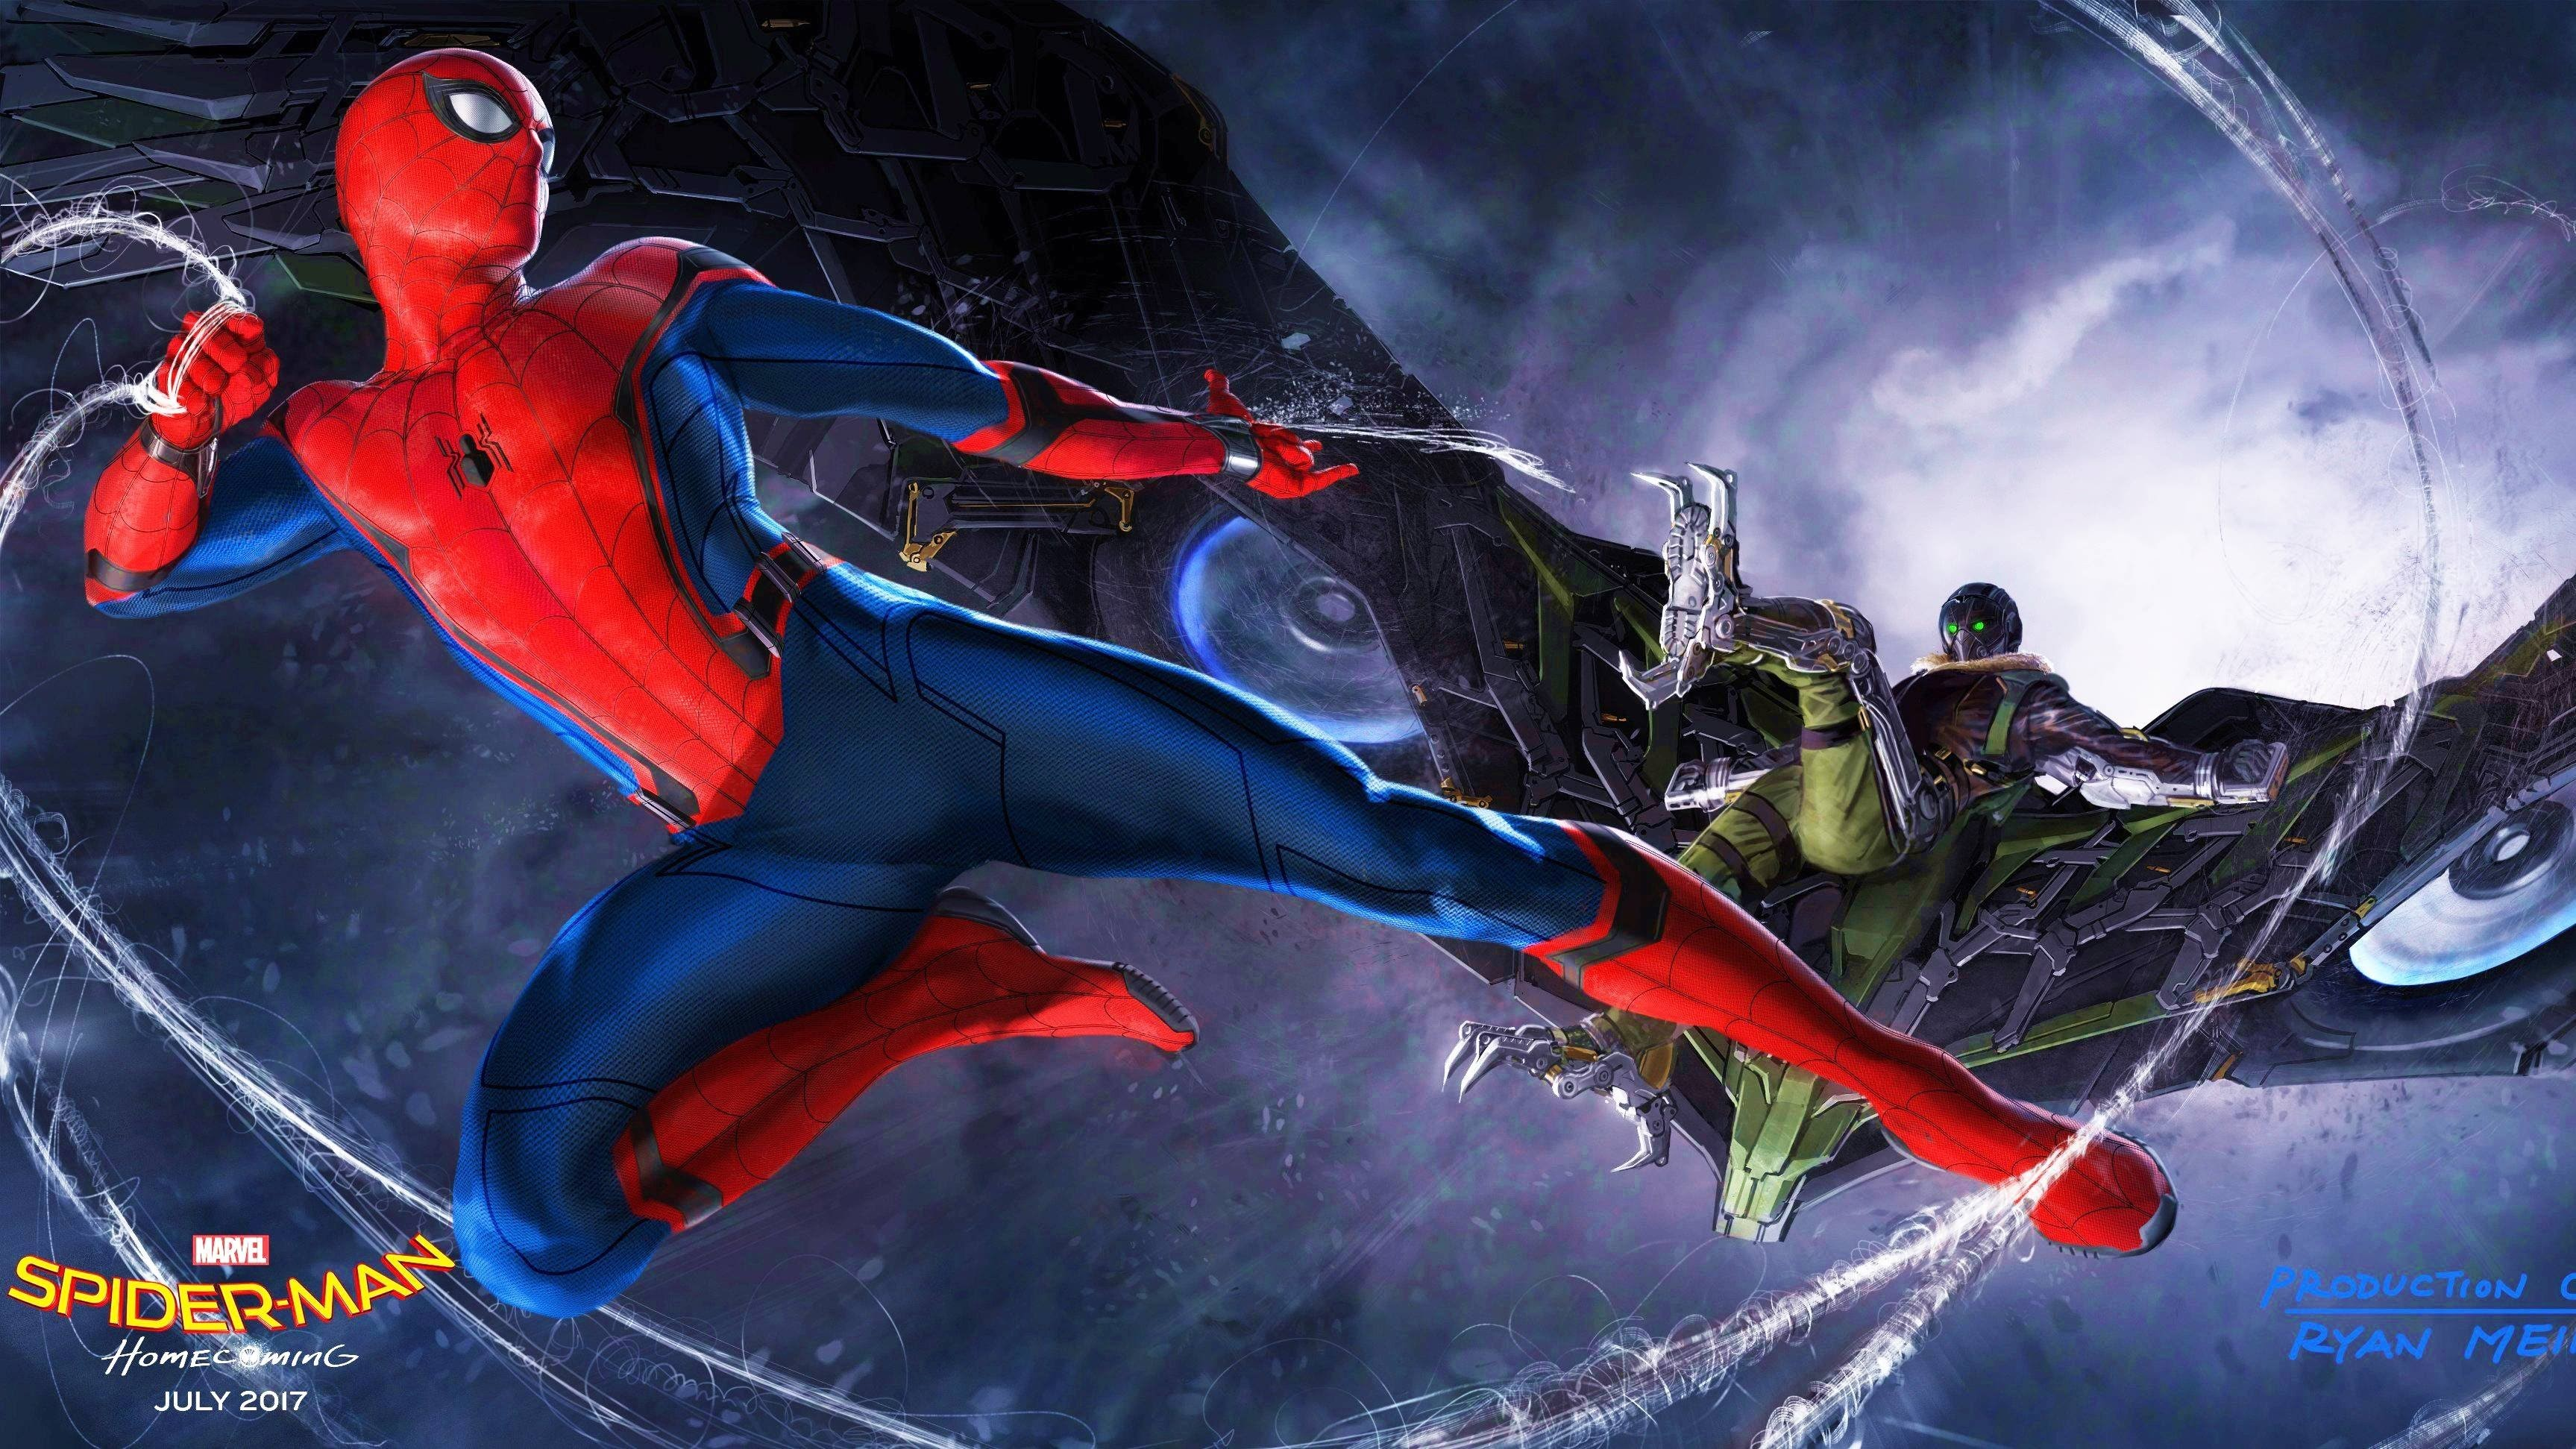 Hd Spider Man Wallpaper, Amazing, The Fictional Character, Tobey Maguire,  Marvel, Team Cap, Black Widow, Movie Wallpaper, 1024×768 HD Wallpaper Des…